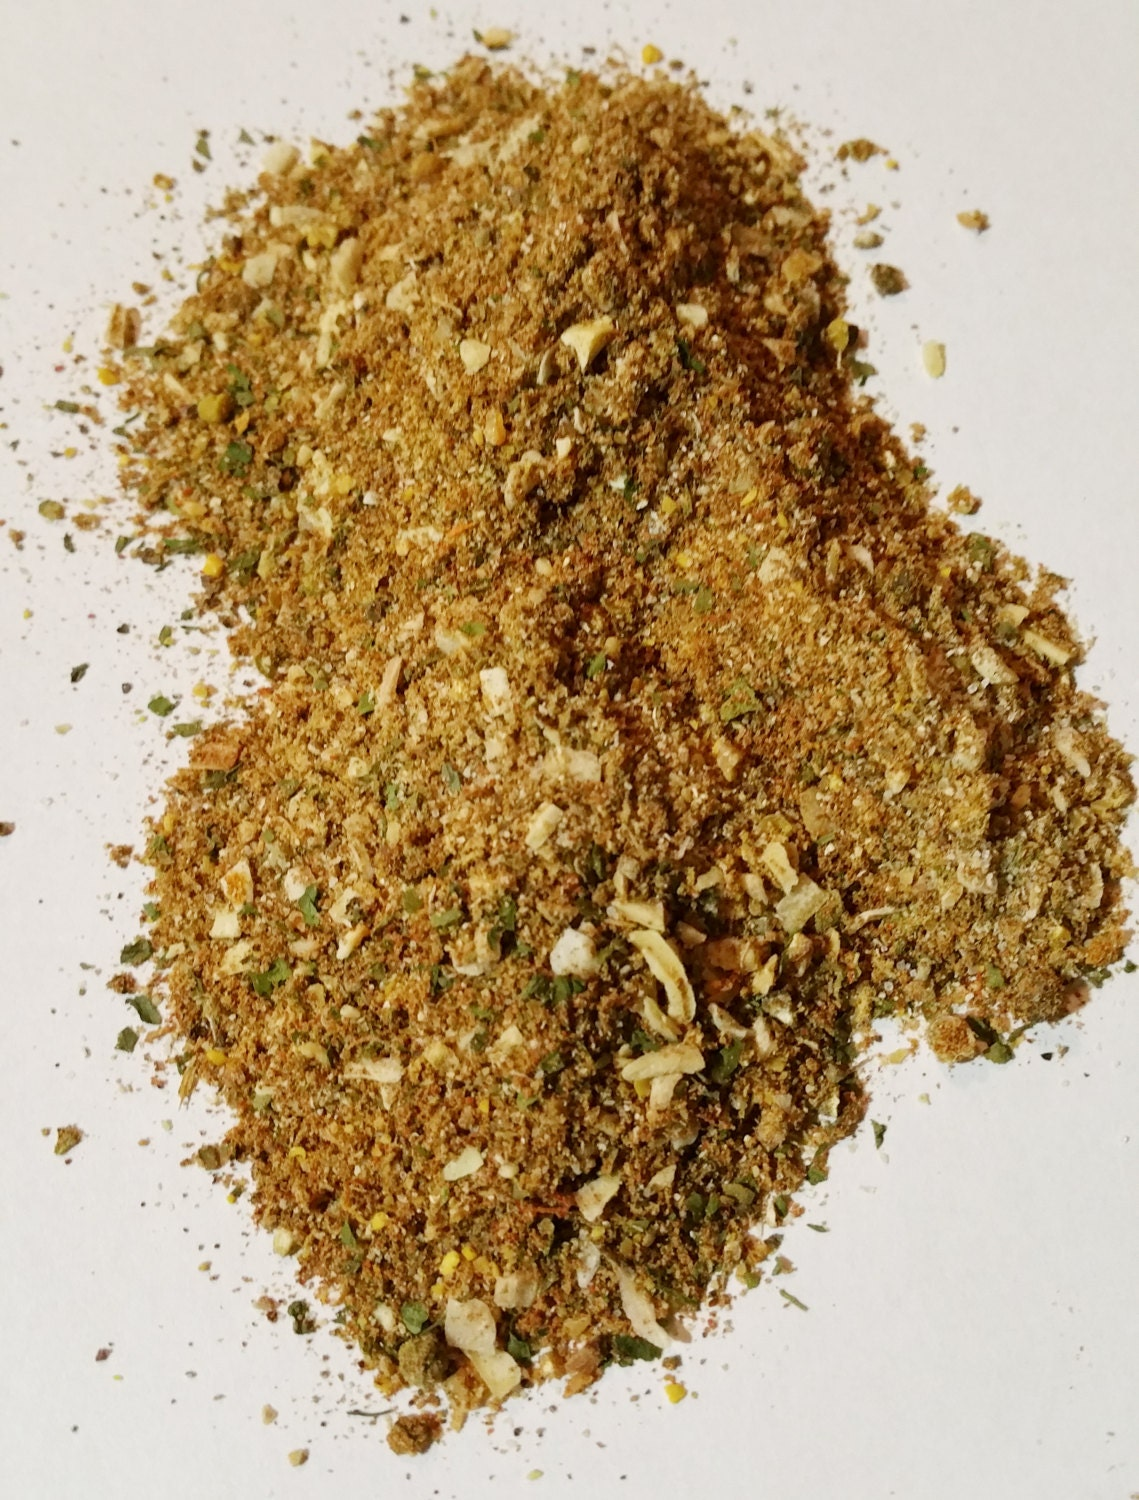 Biryani asian seasoning fresh ground spice mix cuisine blend for A treasury of persian cuisine